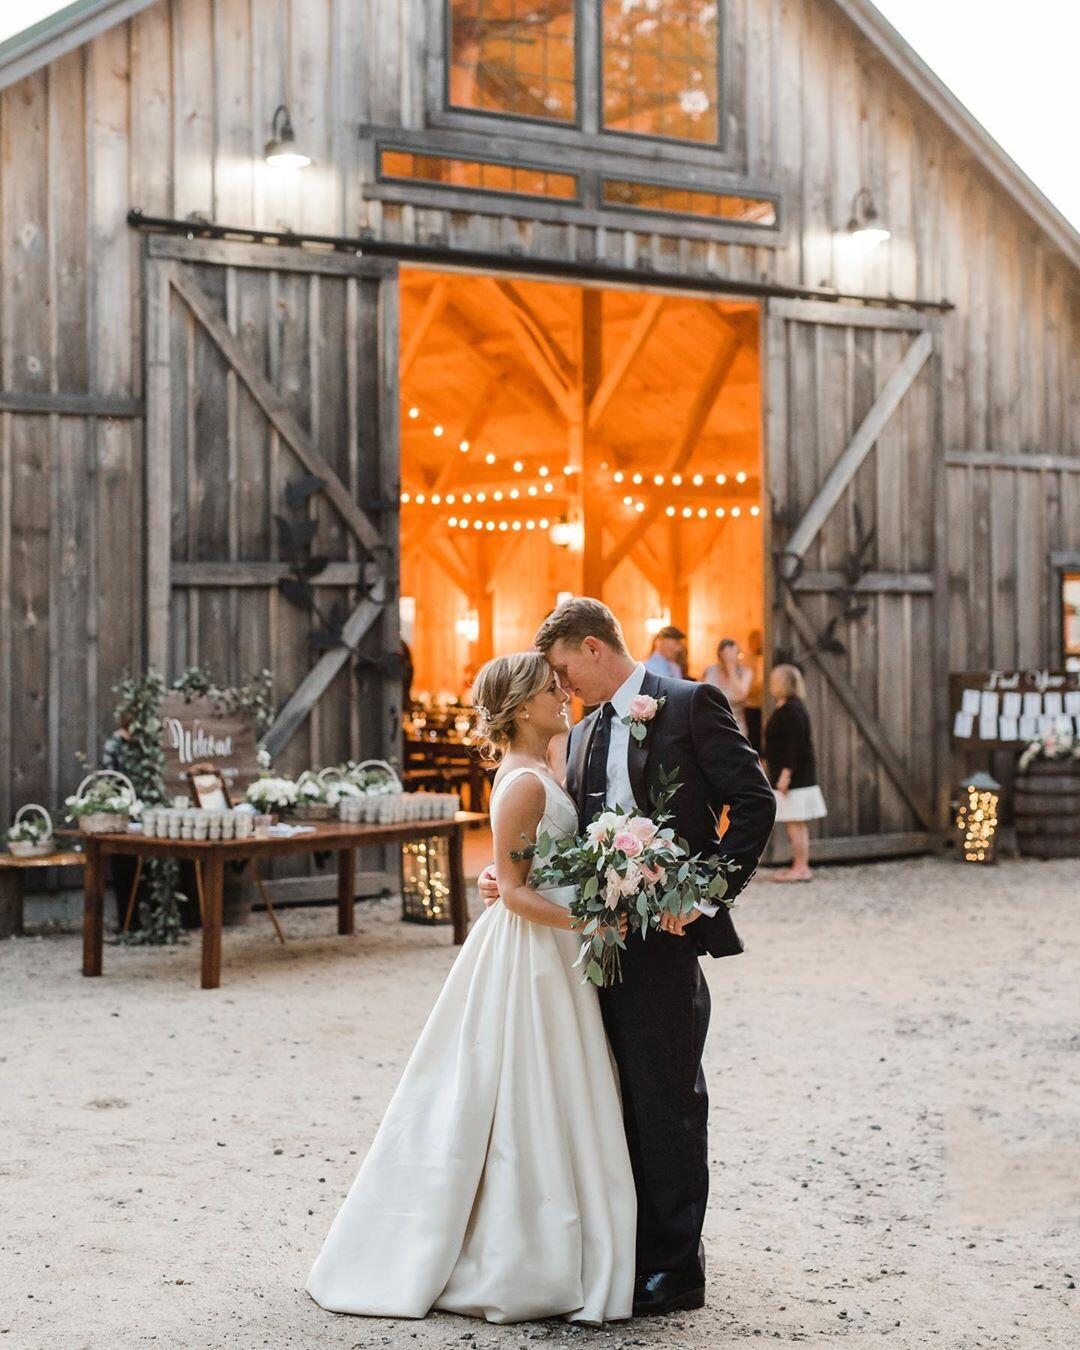 couple in front of barn glowing with light during their wedding reception